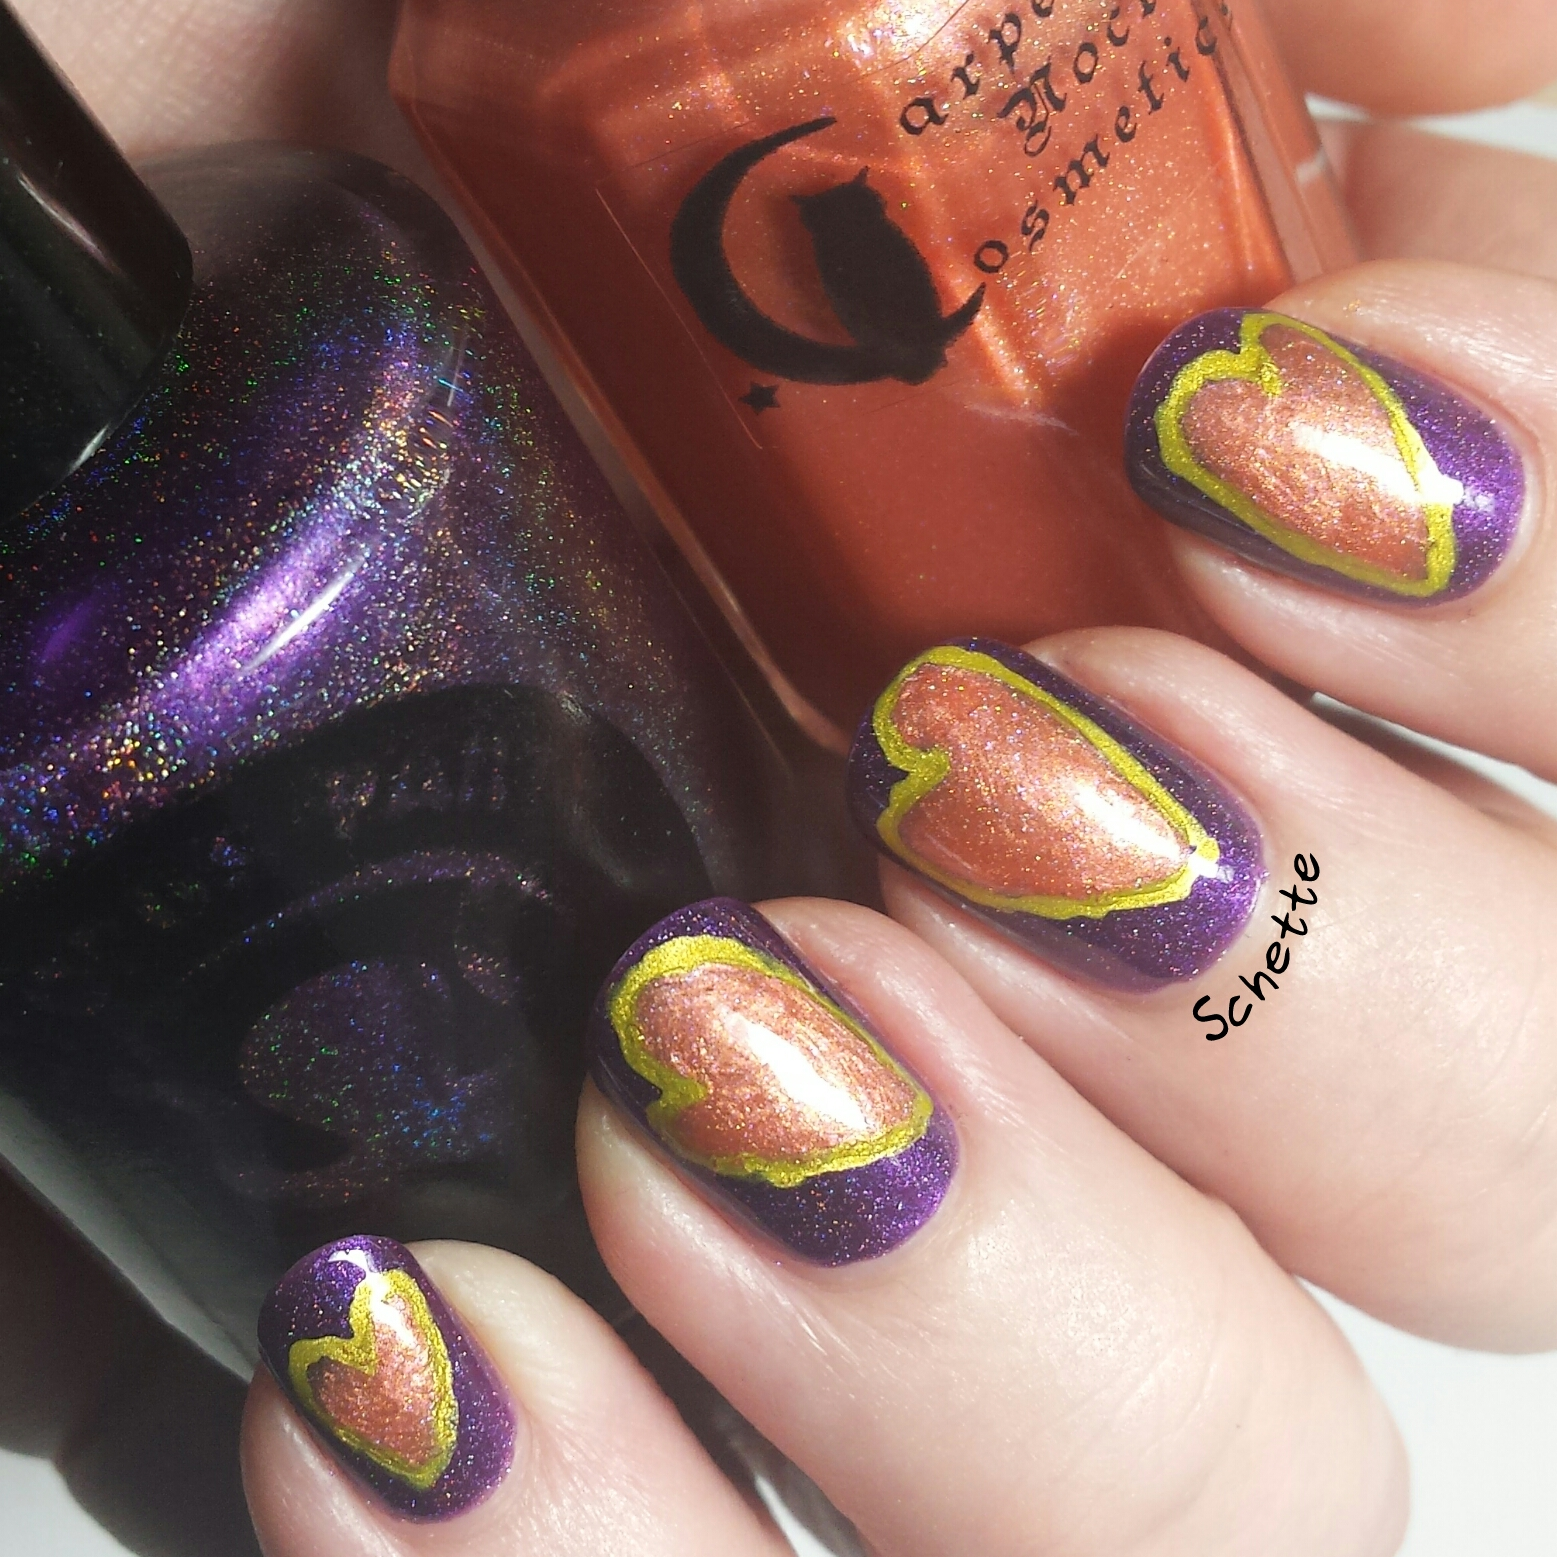 Carpe Noctem Cosmetics & Octopus Party Nail Lacquer - Adoption Duo